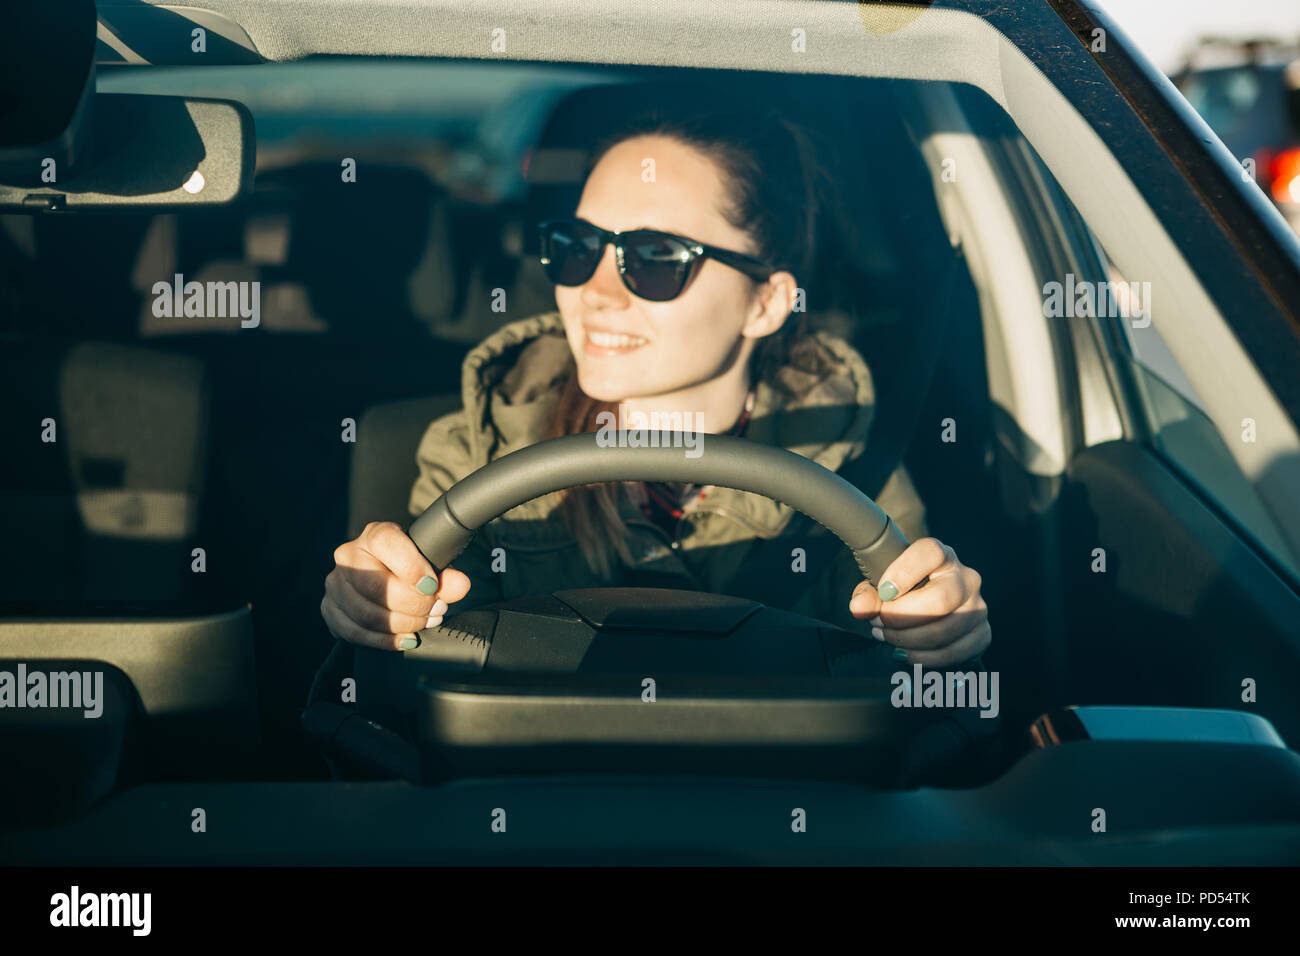 Page 3 Race Car Driver Portrait High Resolution Stock Photography And Images Alamy